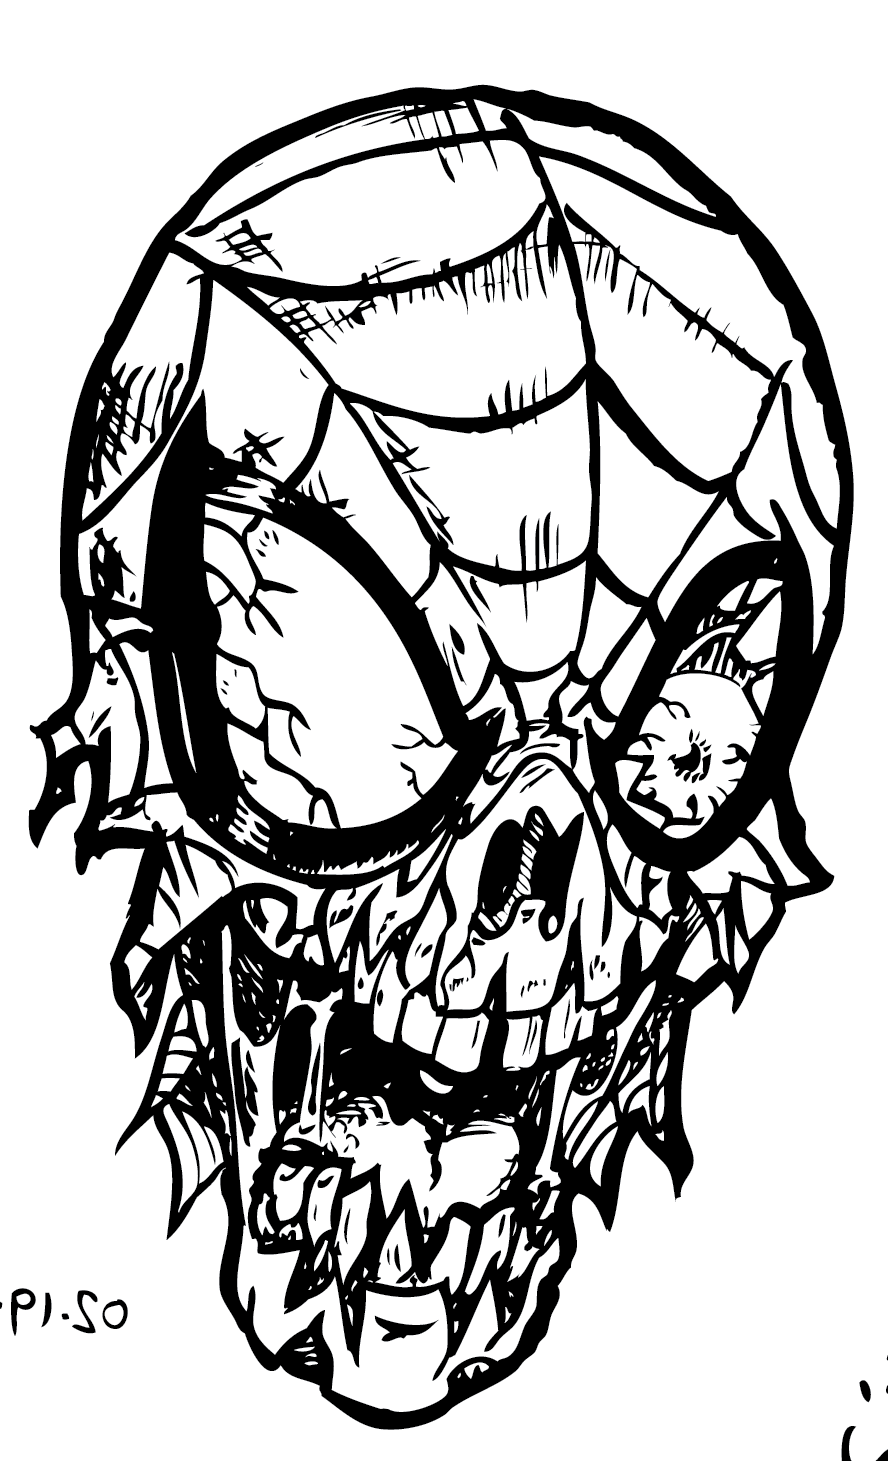 Comic Zombie Colouring S Zombie Coloring Pages In Cartoon Coloring Style Coloring Image Source Spiderman Coloring Batman Coloring Pages Animal Coloring Pages